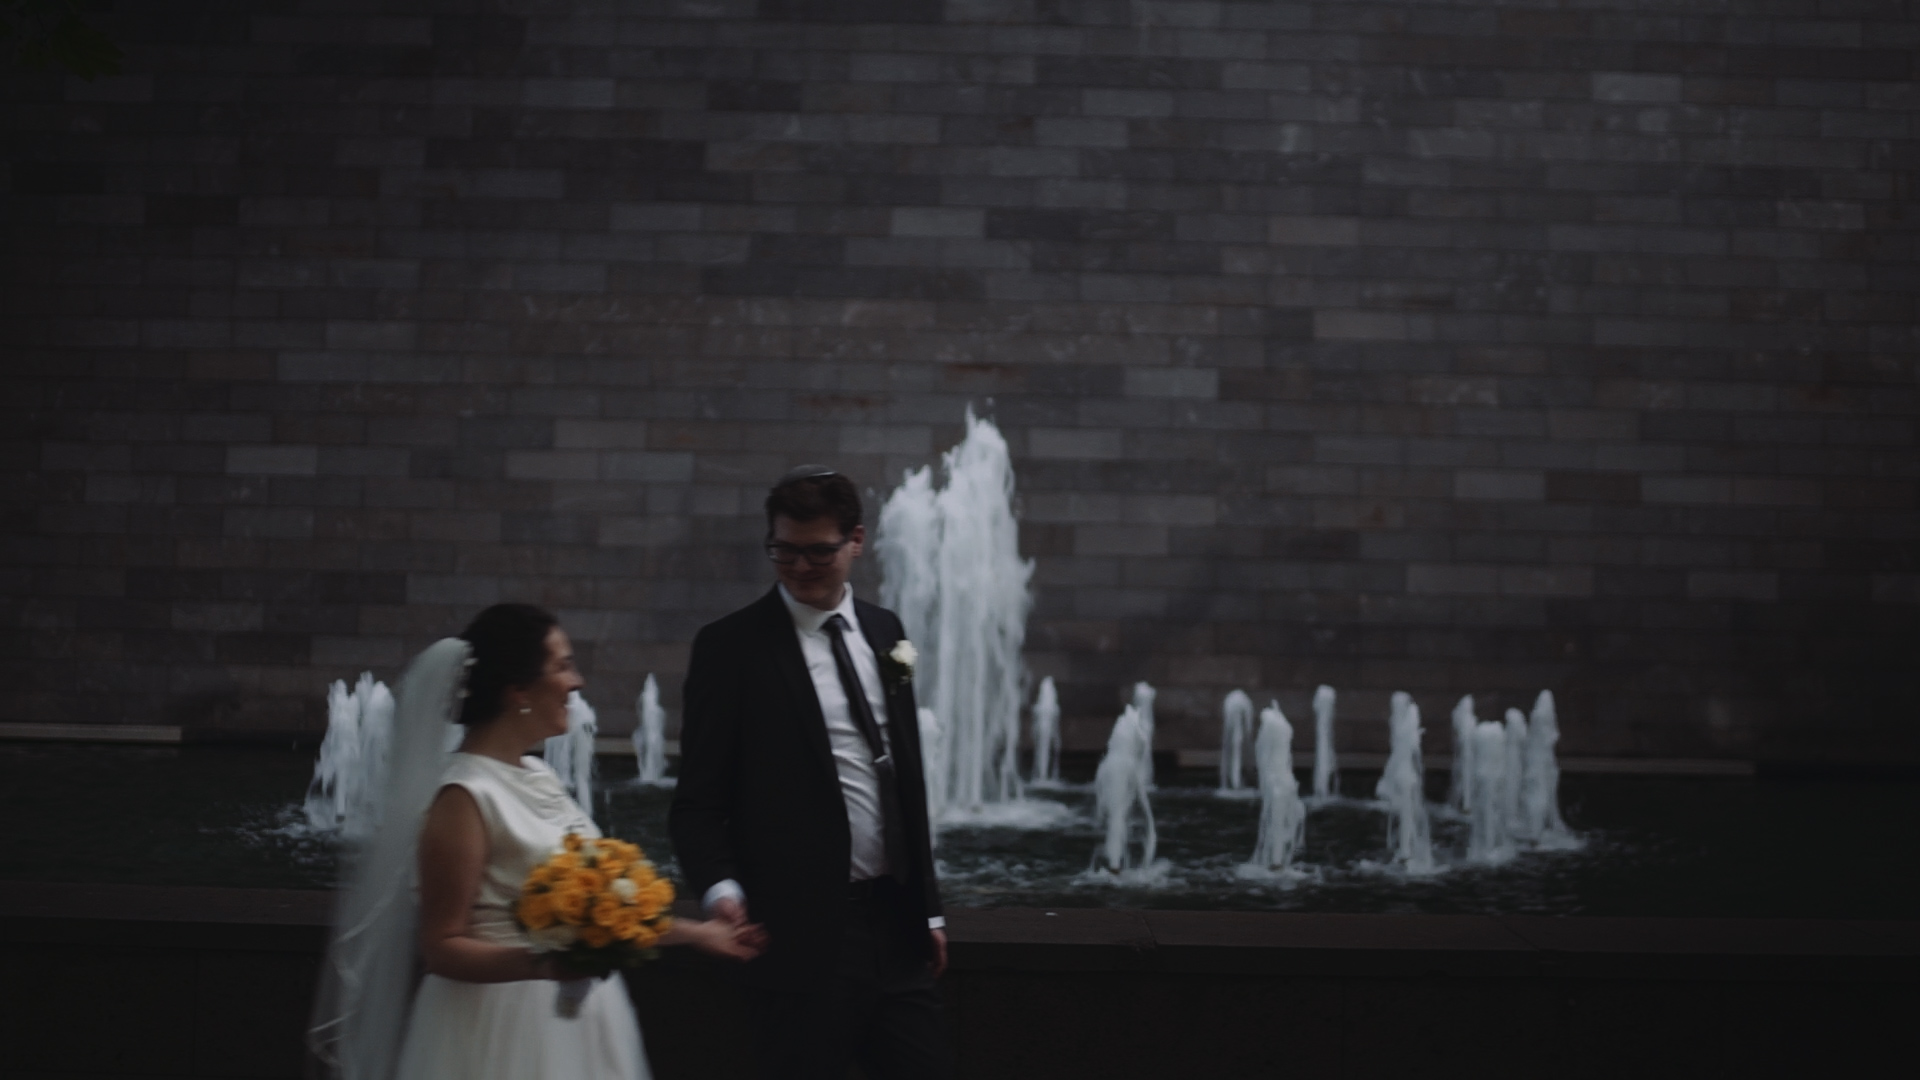 zeev and caroline melbourne wedding videography